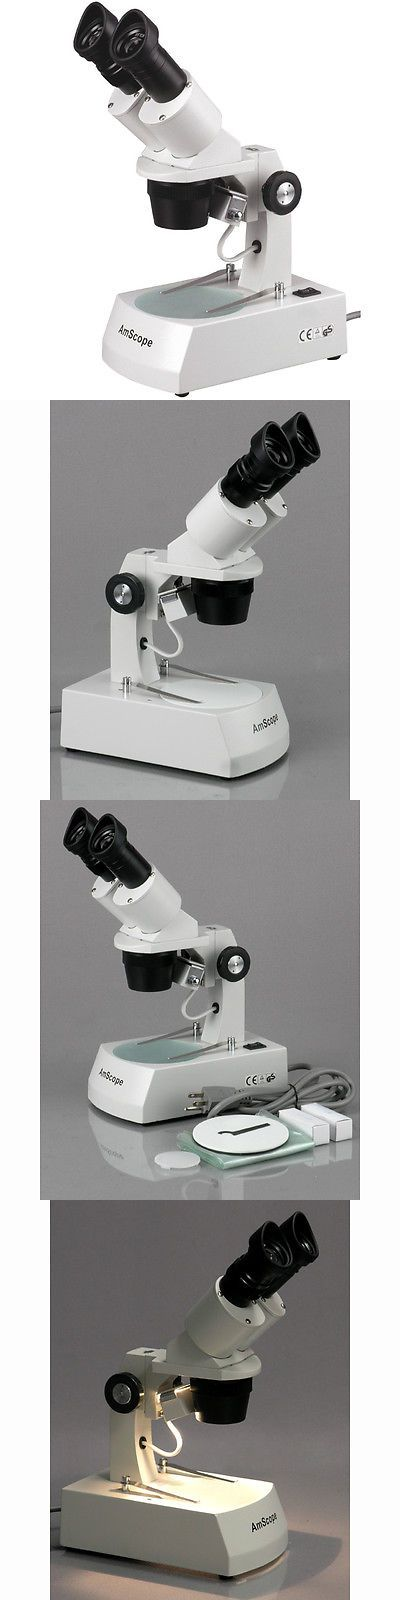 Microscopes and Chemistry 2568: Amscope 10X-20X-30X-60X Binocular Stereo Microscope With Top And Bottom Lights -> BUY IT NOW ONLY: $136.22 on eBay!